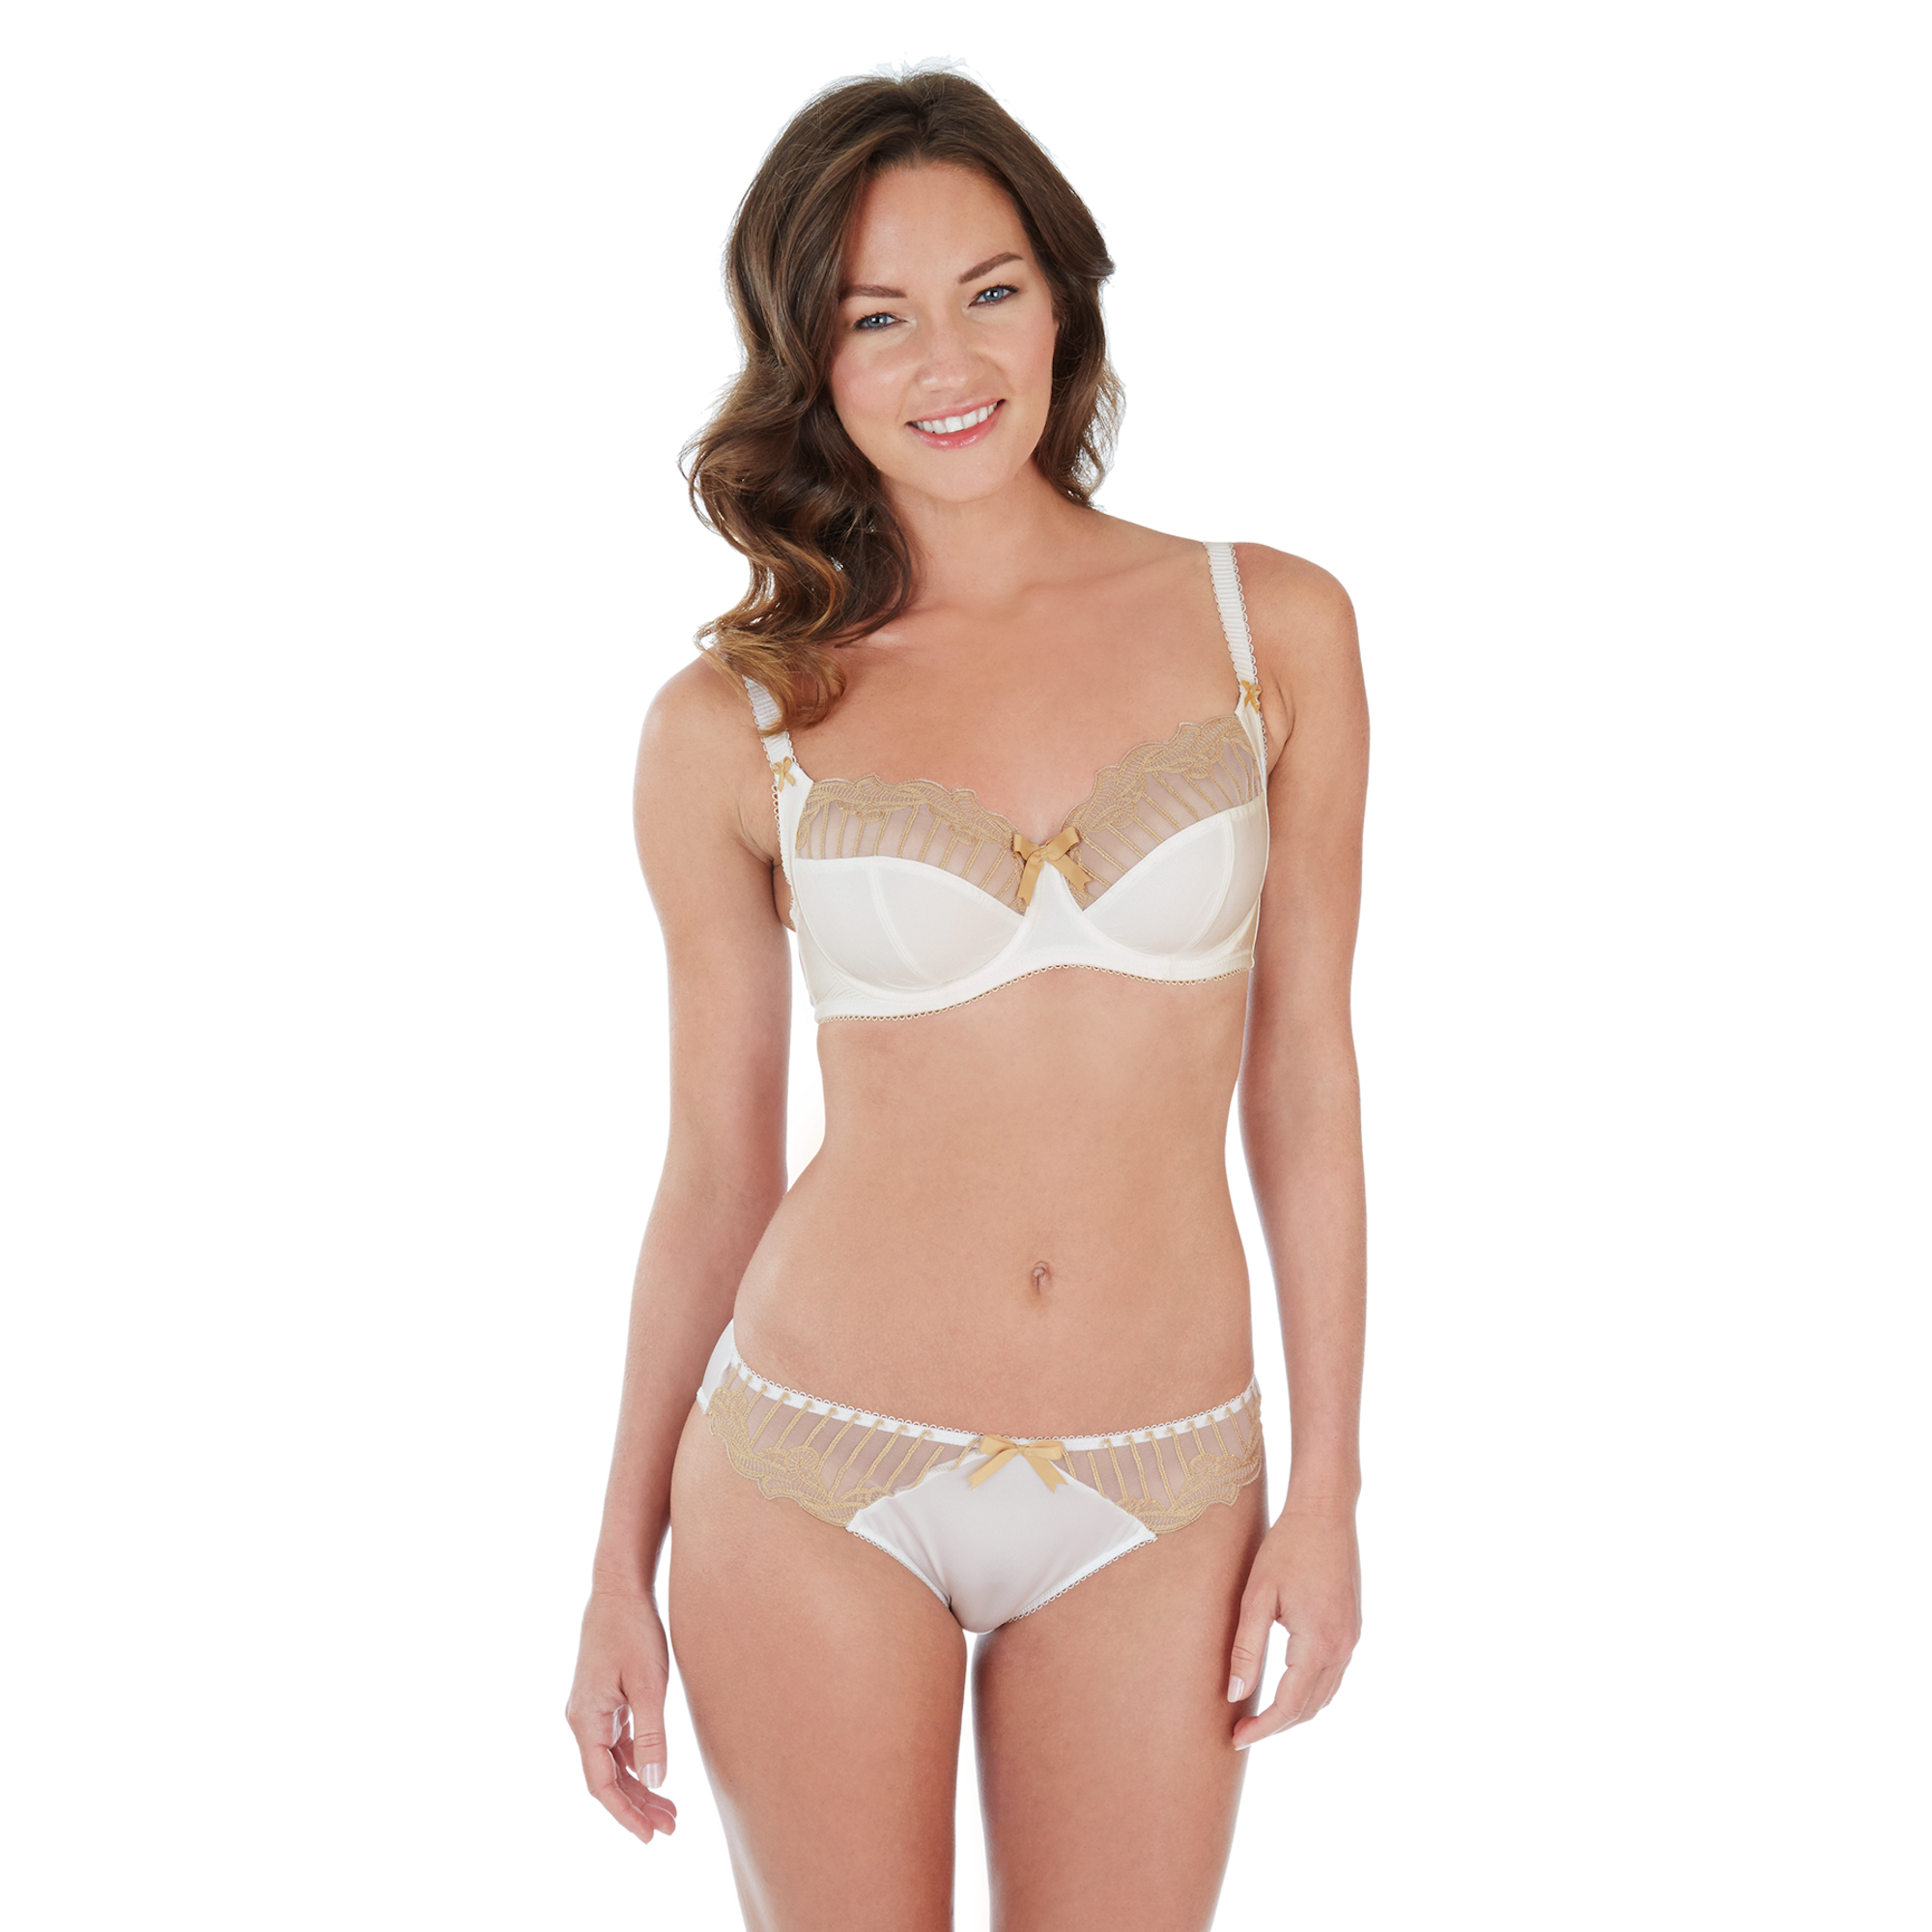 Charnos Sienna Ivory Full Cup Bra Eve Lingerie